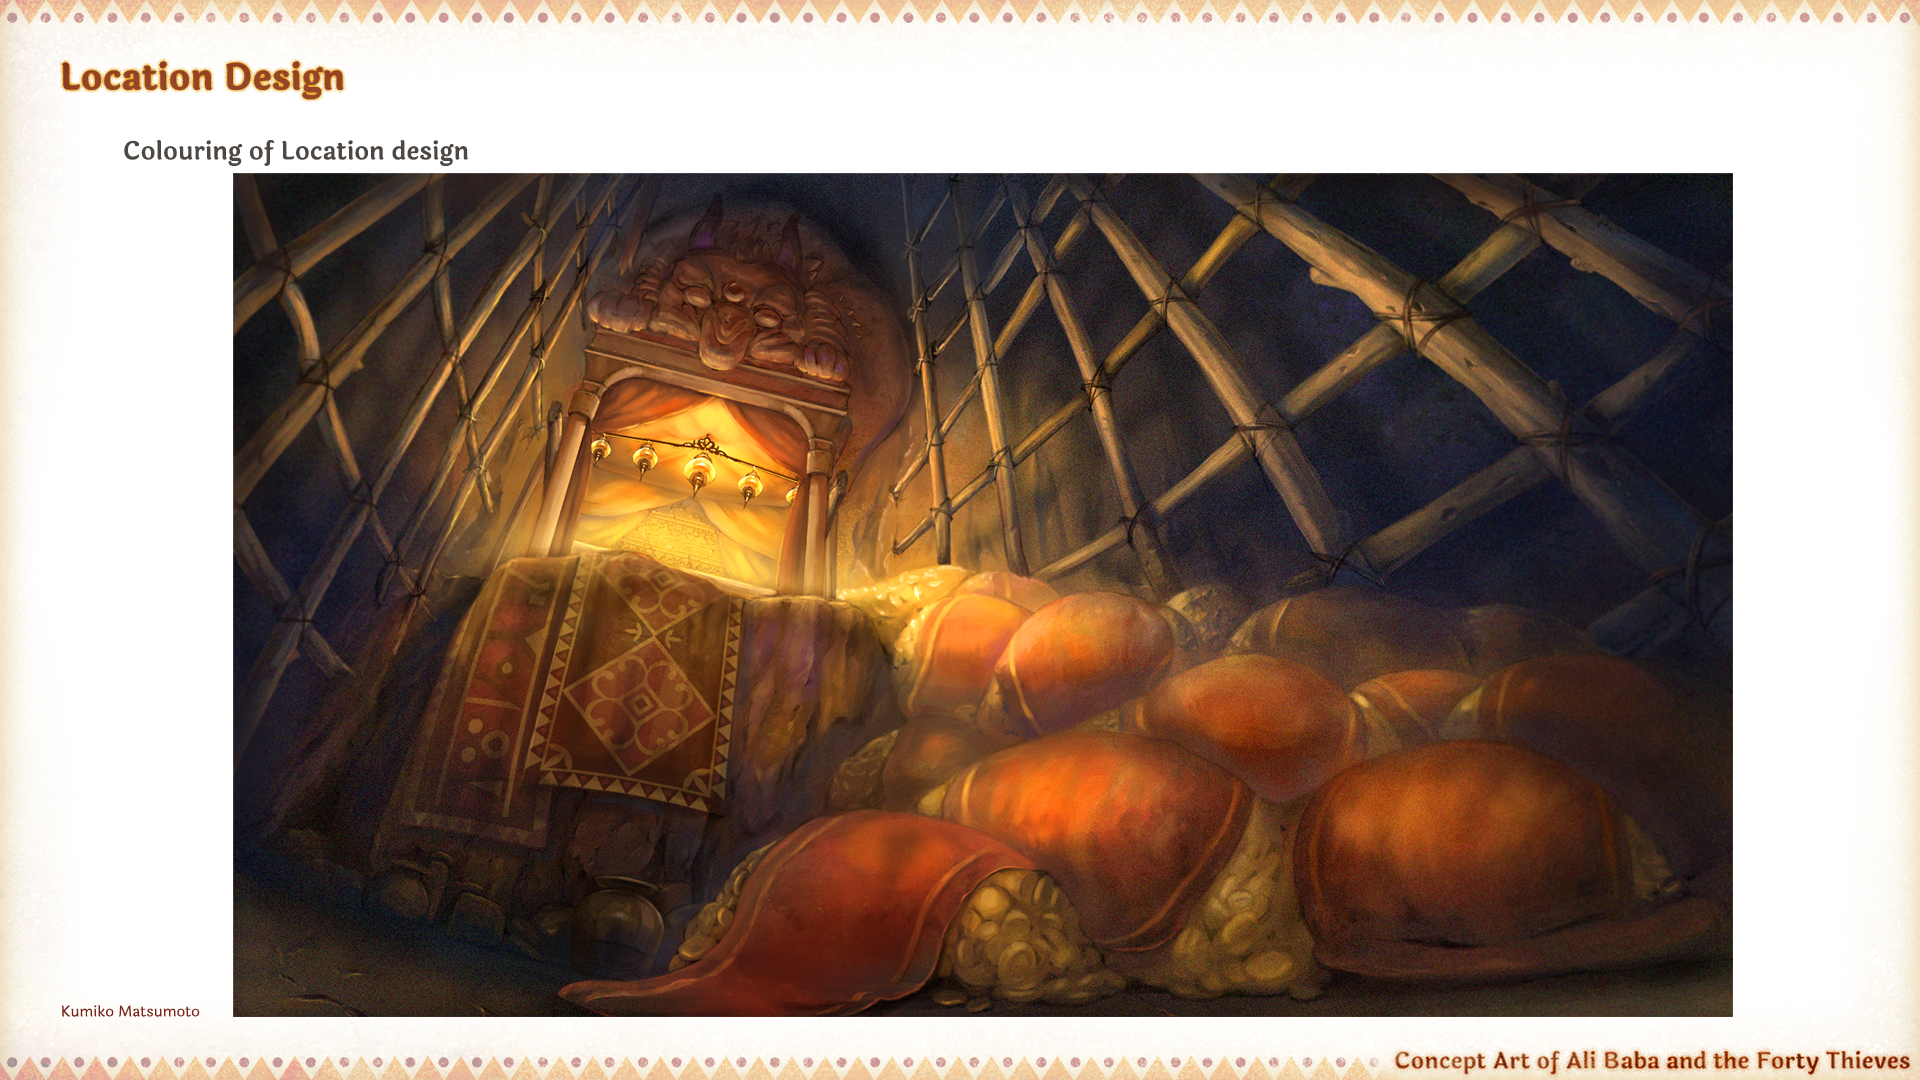 Location design of Alibaba and the 40 thieves